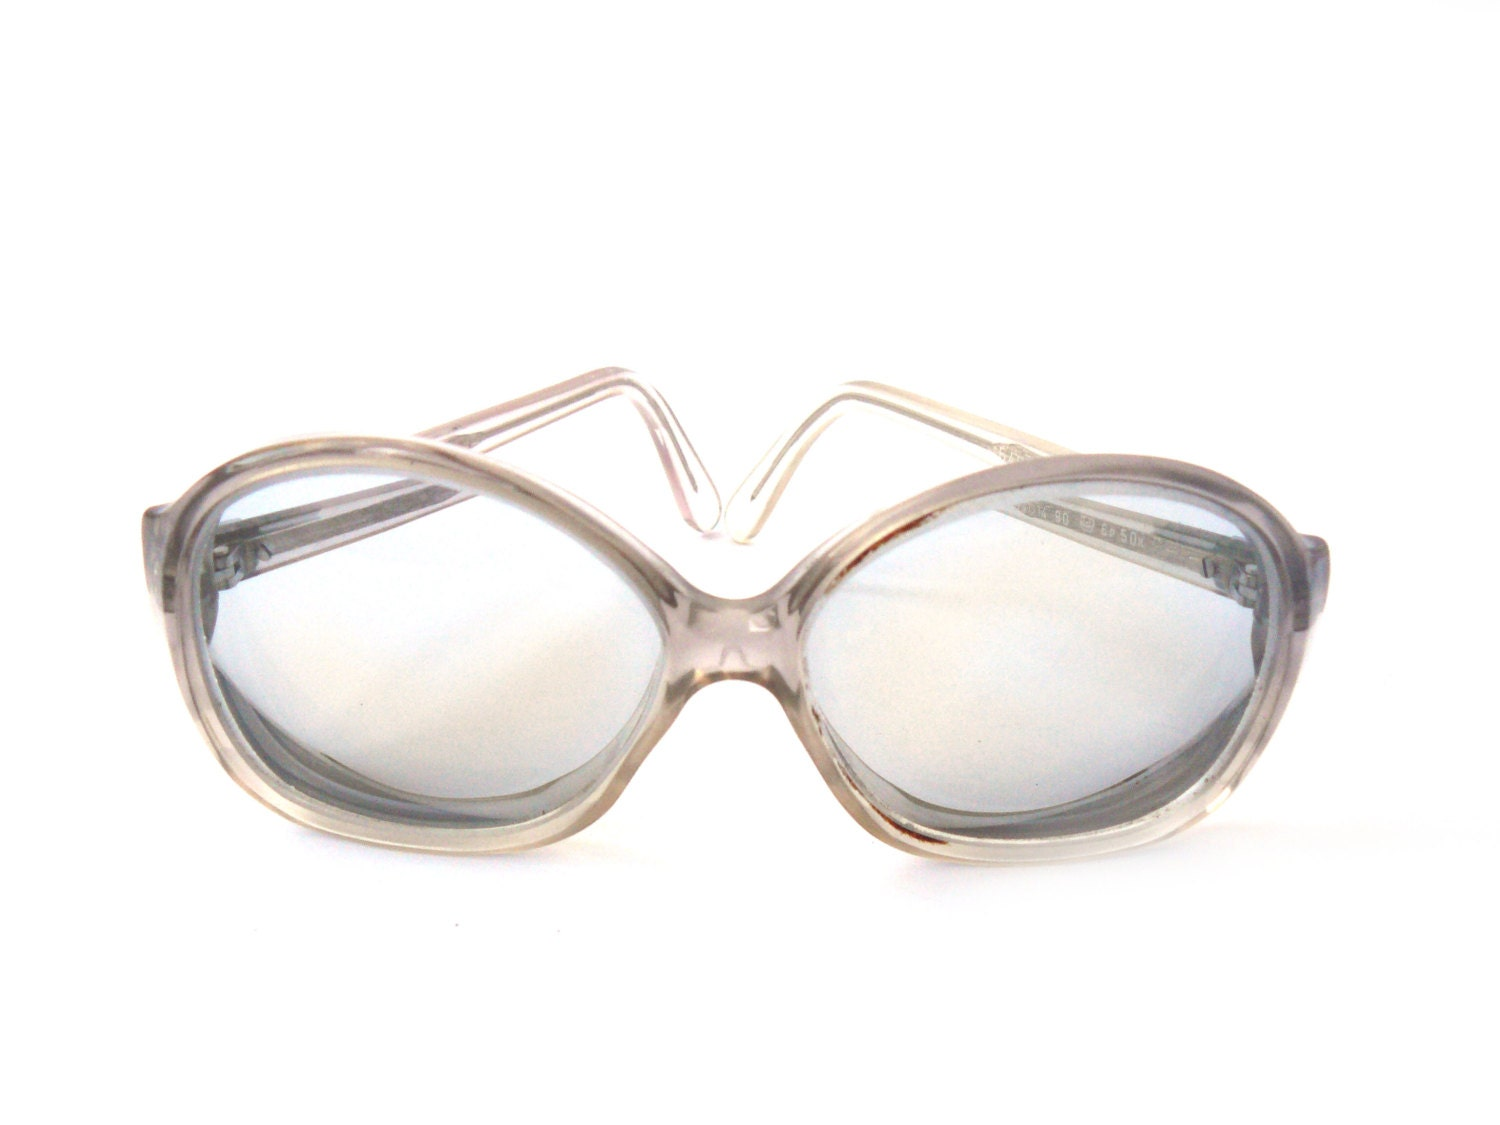 Gray Frame Reading Glasses : Vintage gray reading glasses spectacle frames hipster